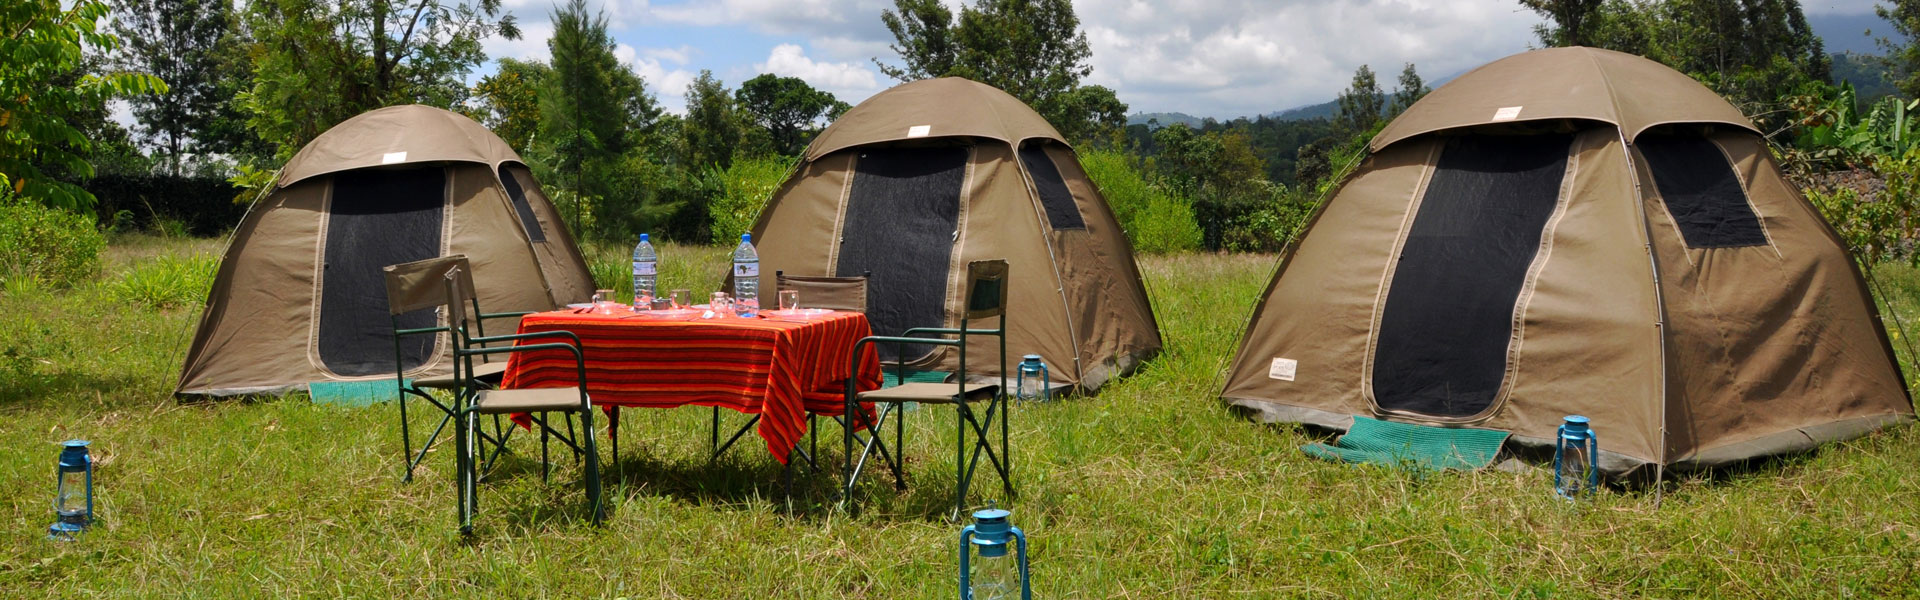 4 Days Tanzania Camping Safari